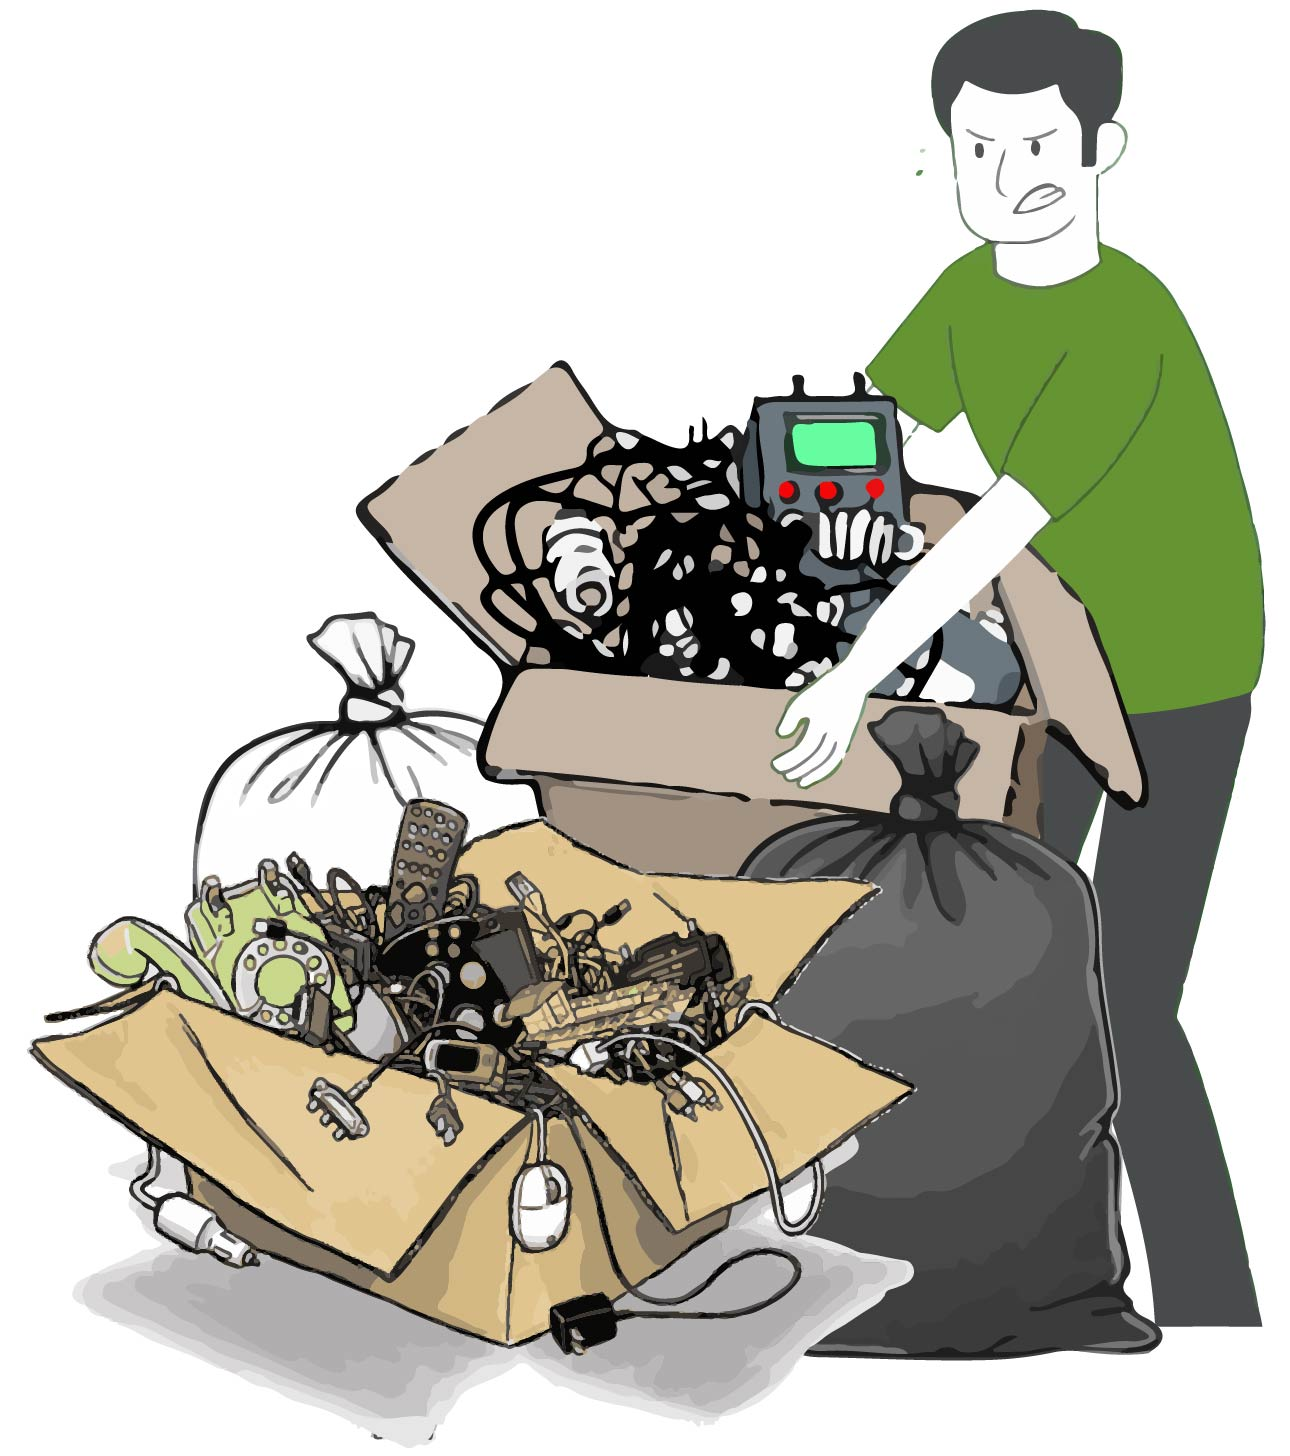 Reliable junk removal Key Biscayne FL